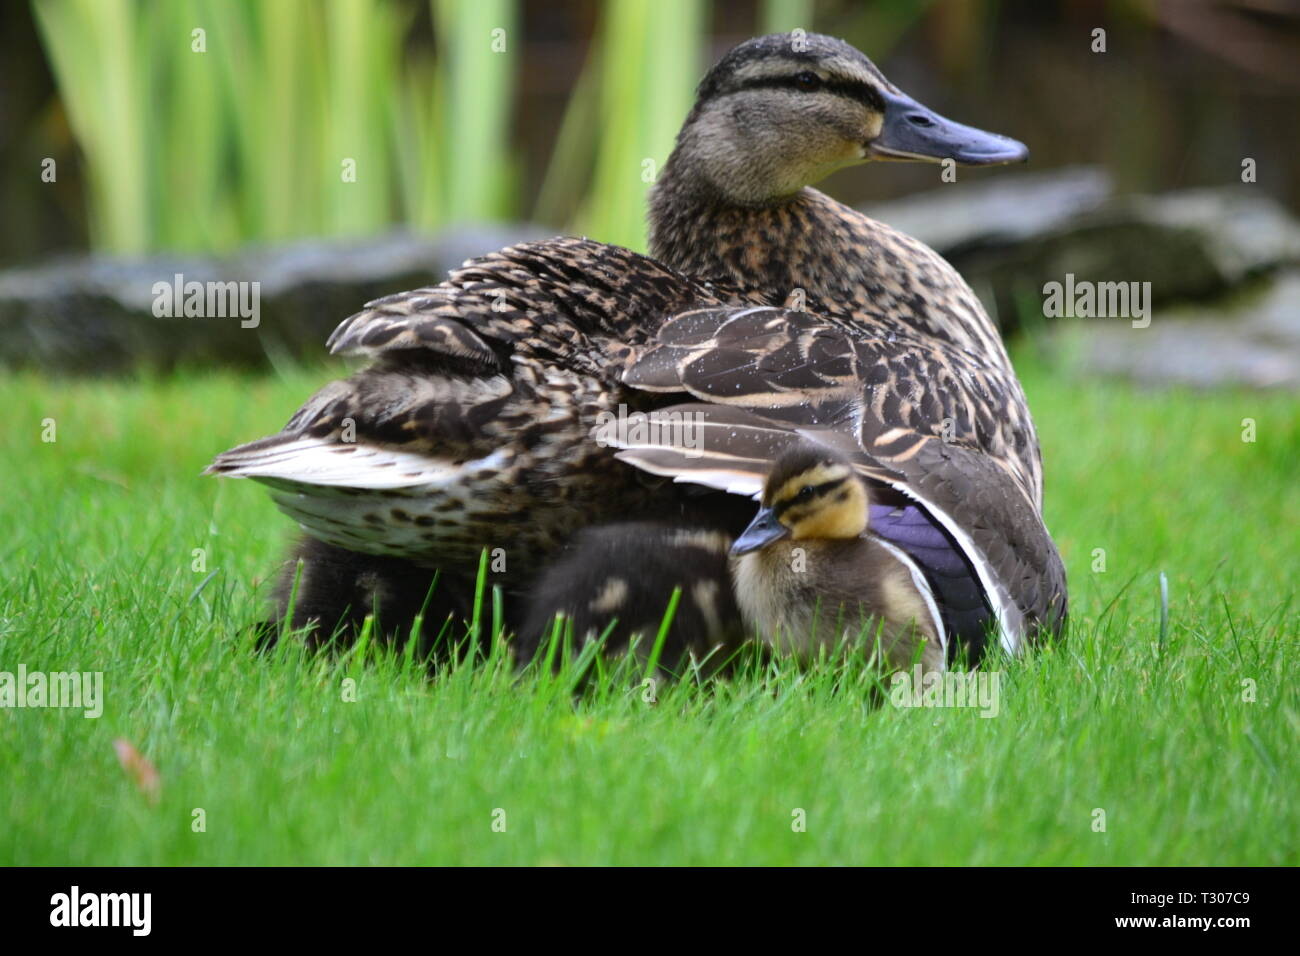 Baby Ducklings Sheltering From The Rain - Filey Yorkshire UK - Stock Image